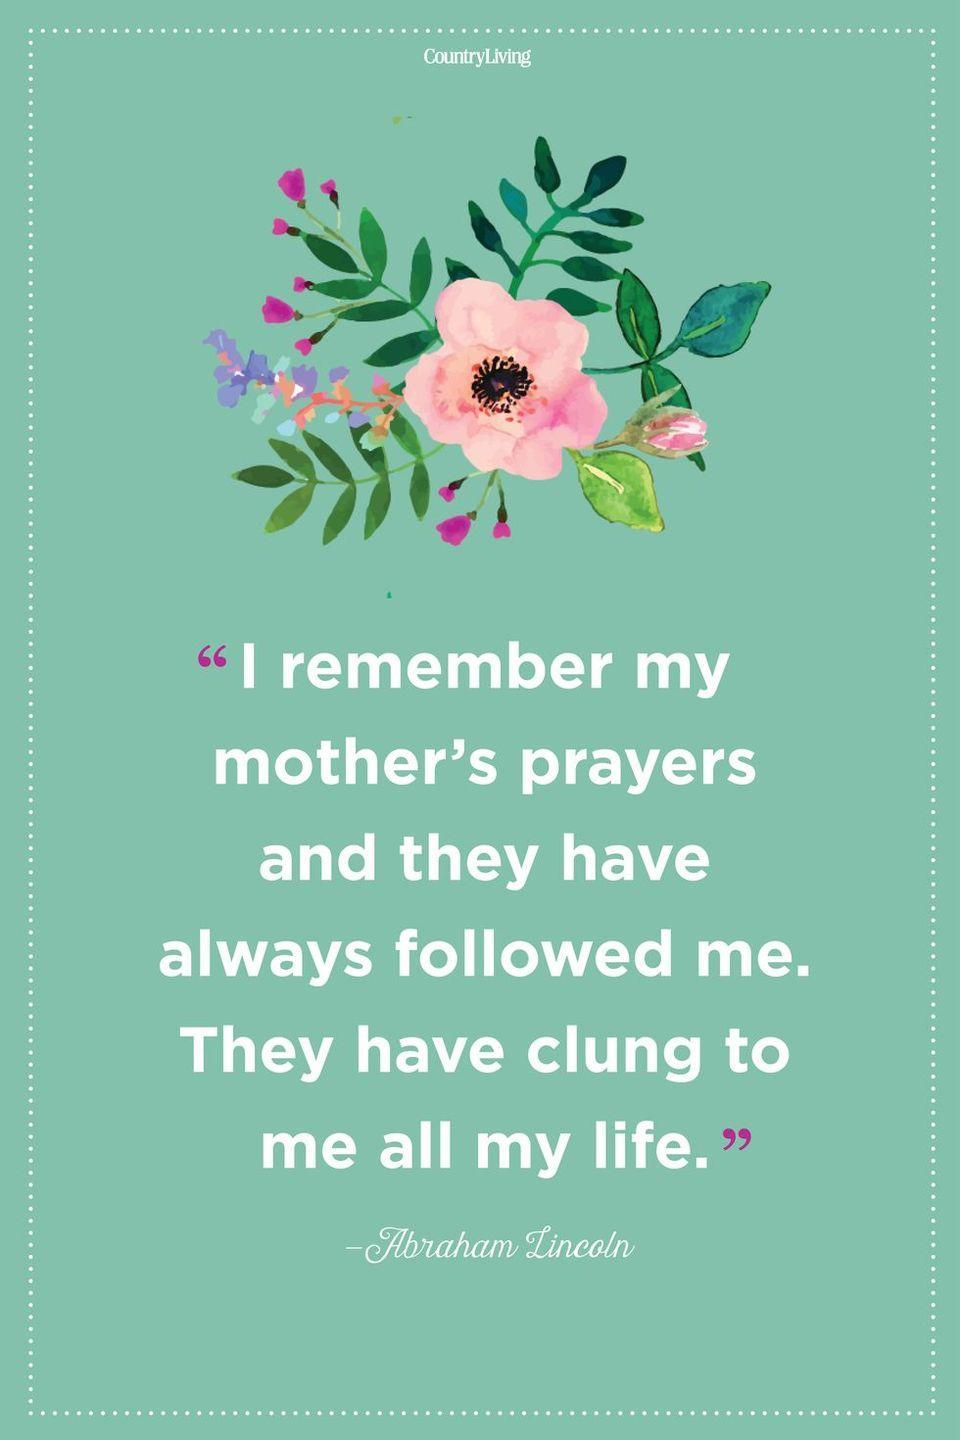 "<p>""I remember my mother's prayers and they have always followed me. They have clung to me all my life.""</p>"